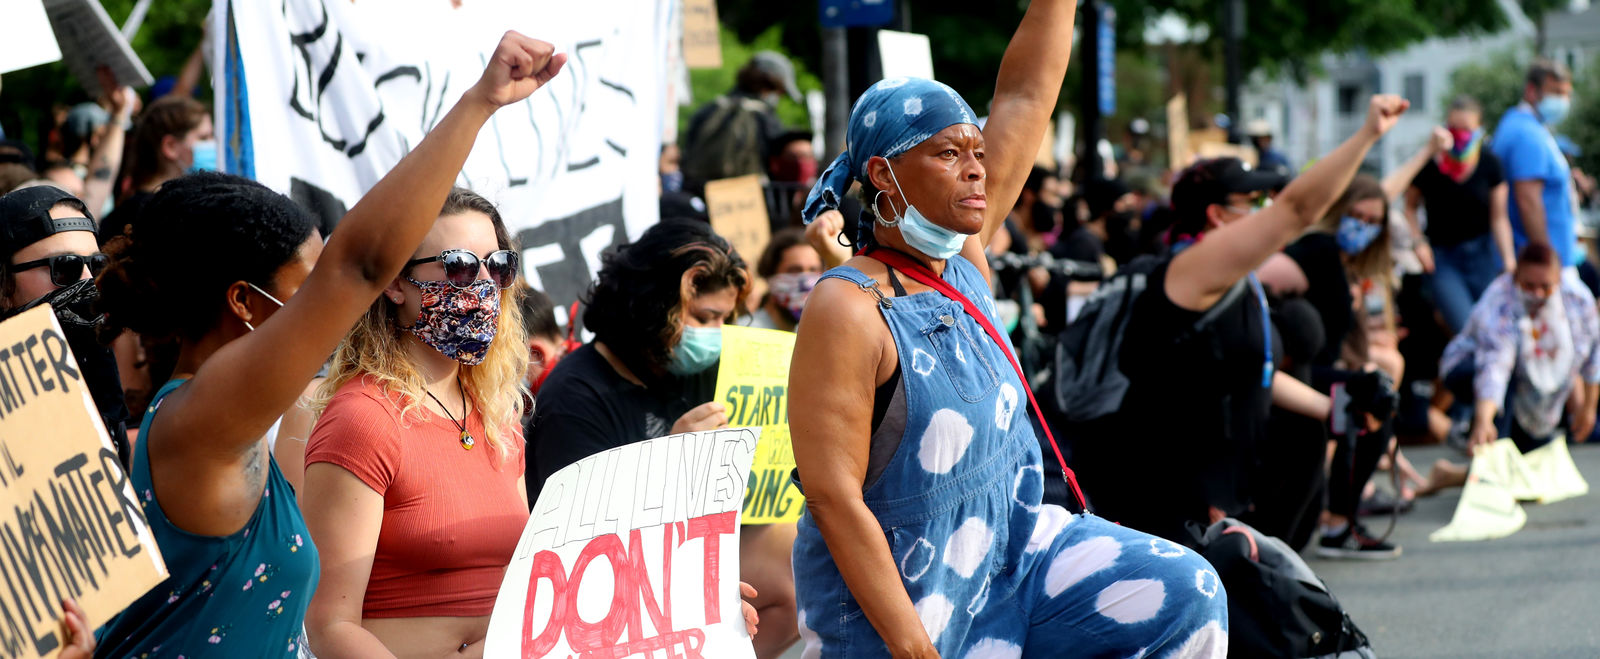 A woman raises her first at a rally for racial justice